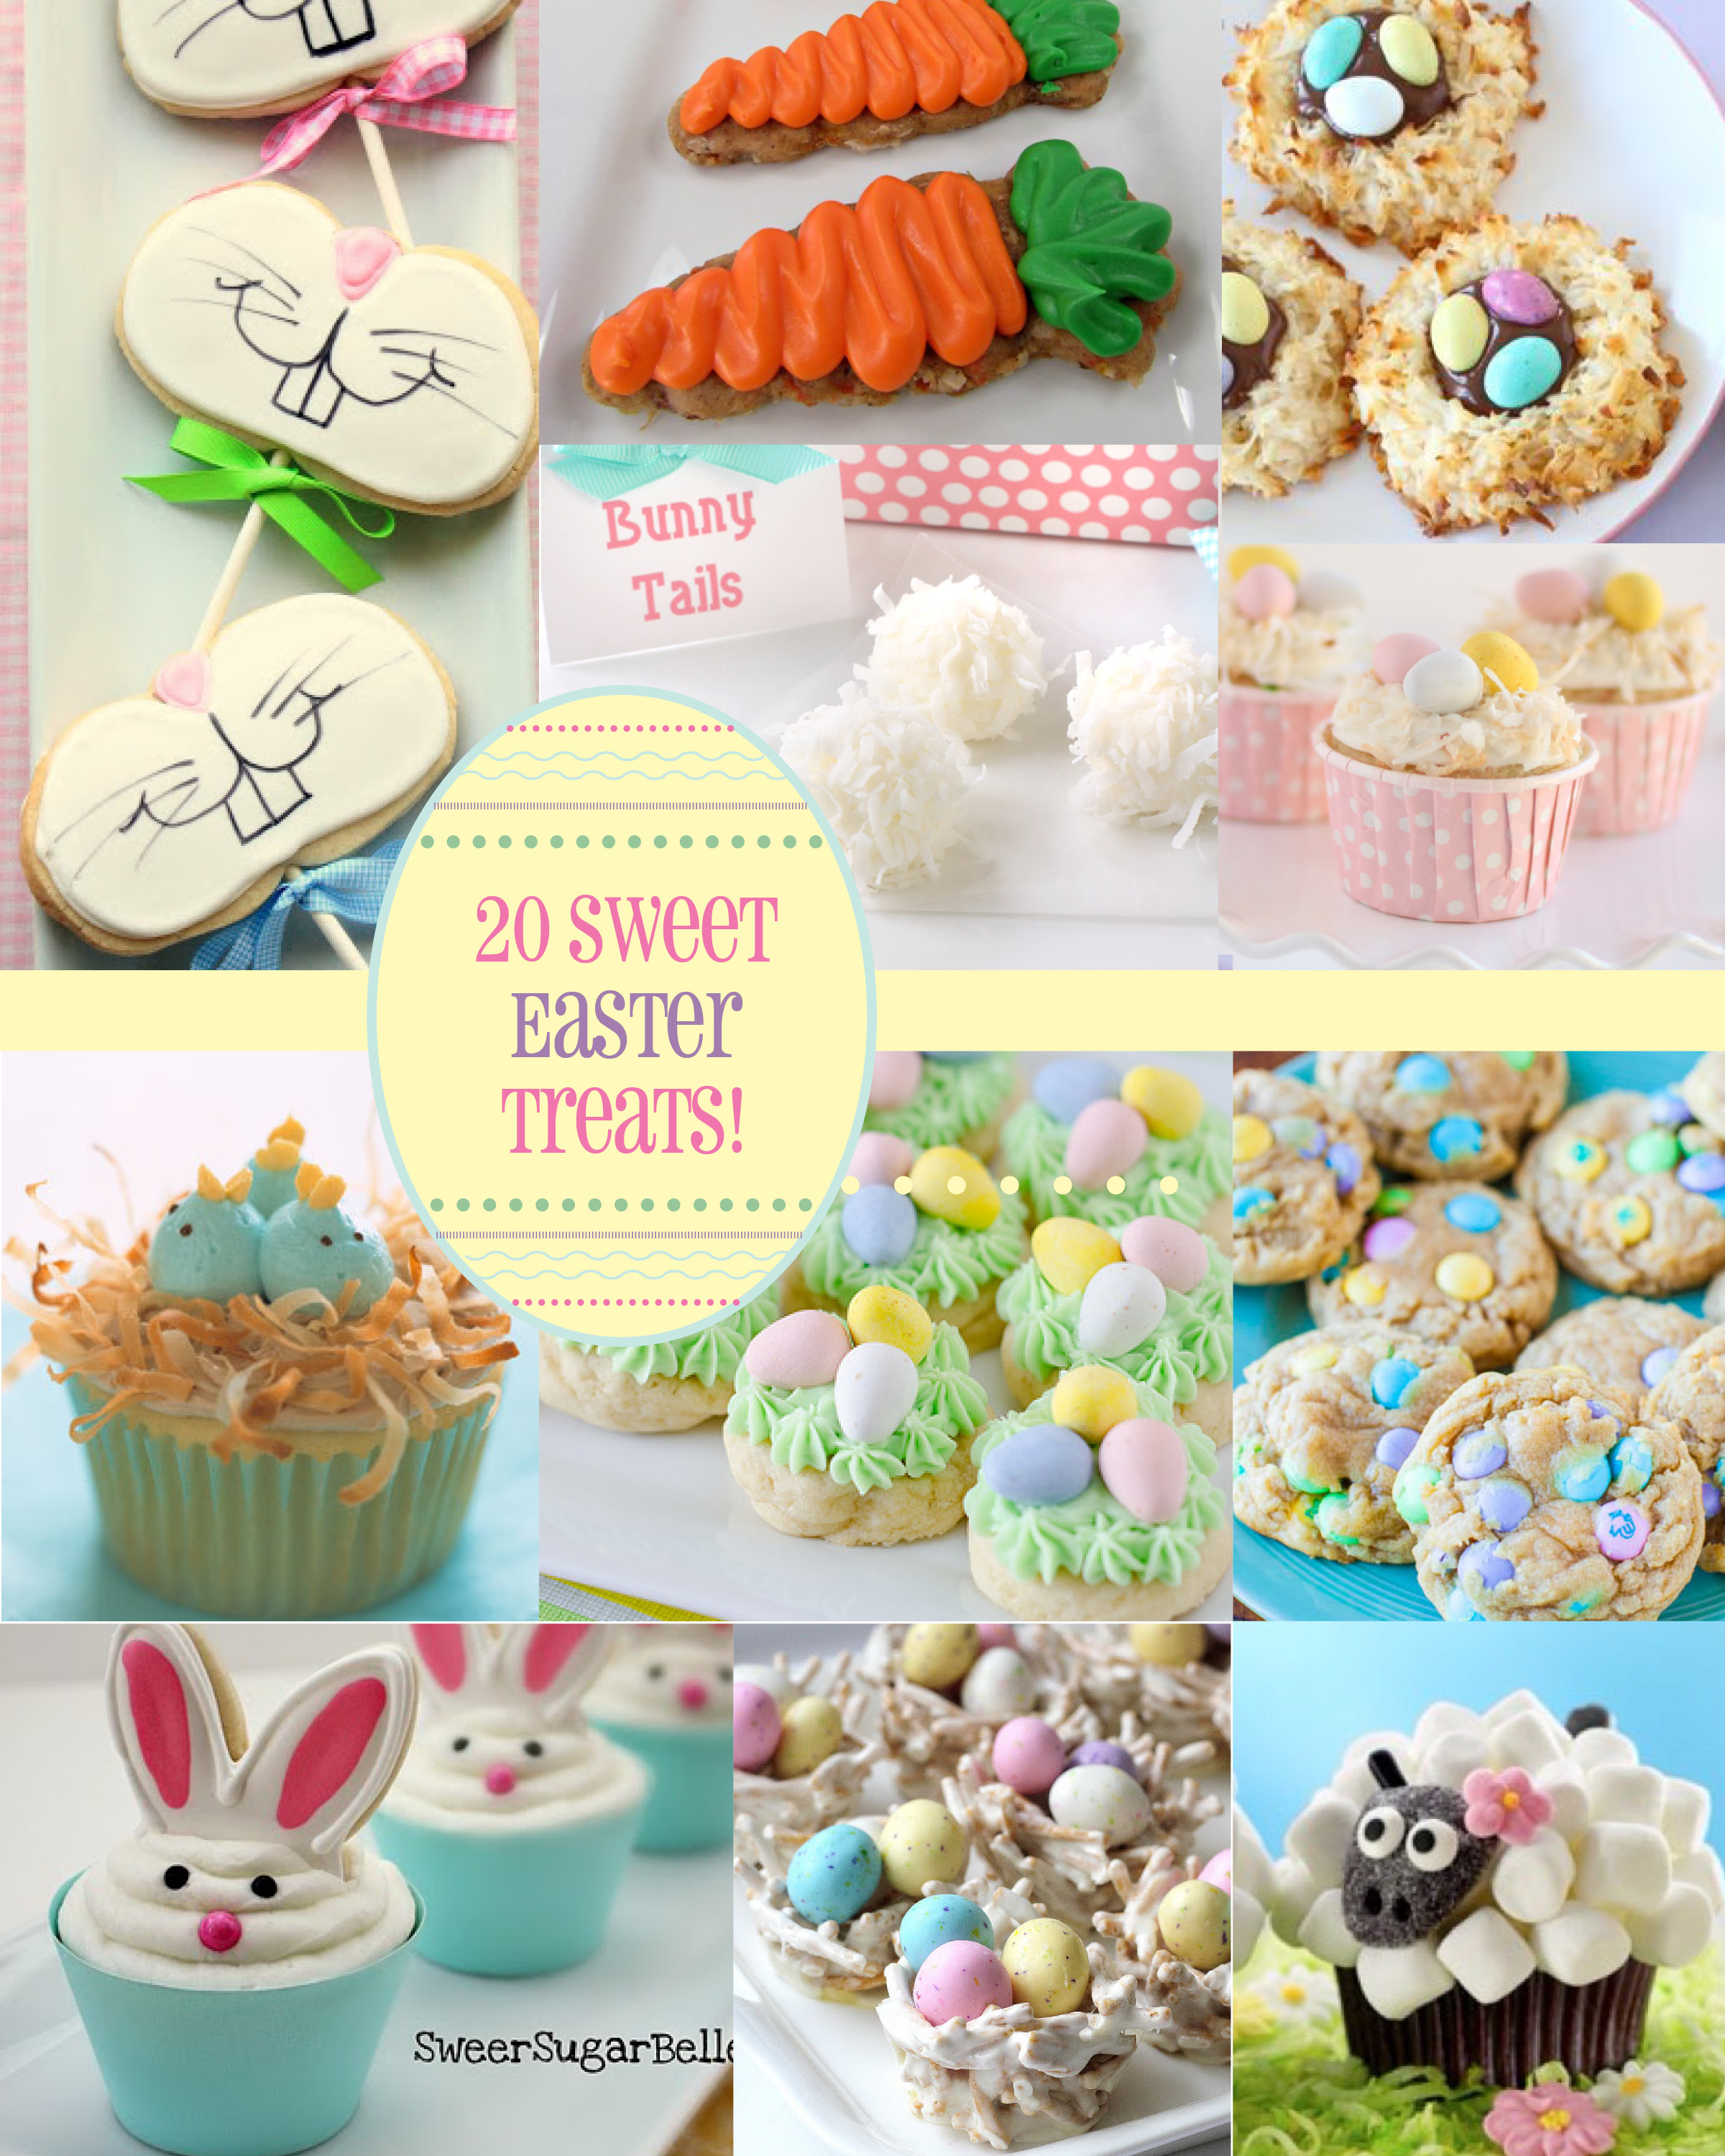 20EasterTreatsfromPerpetuallyDaydreaming